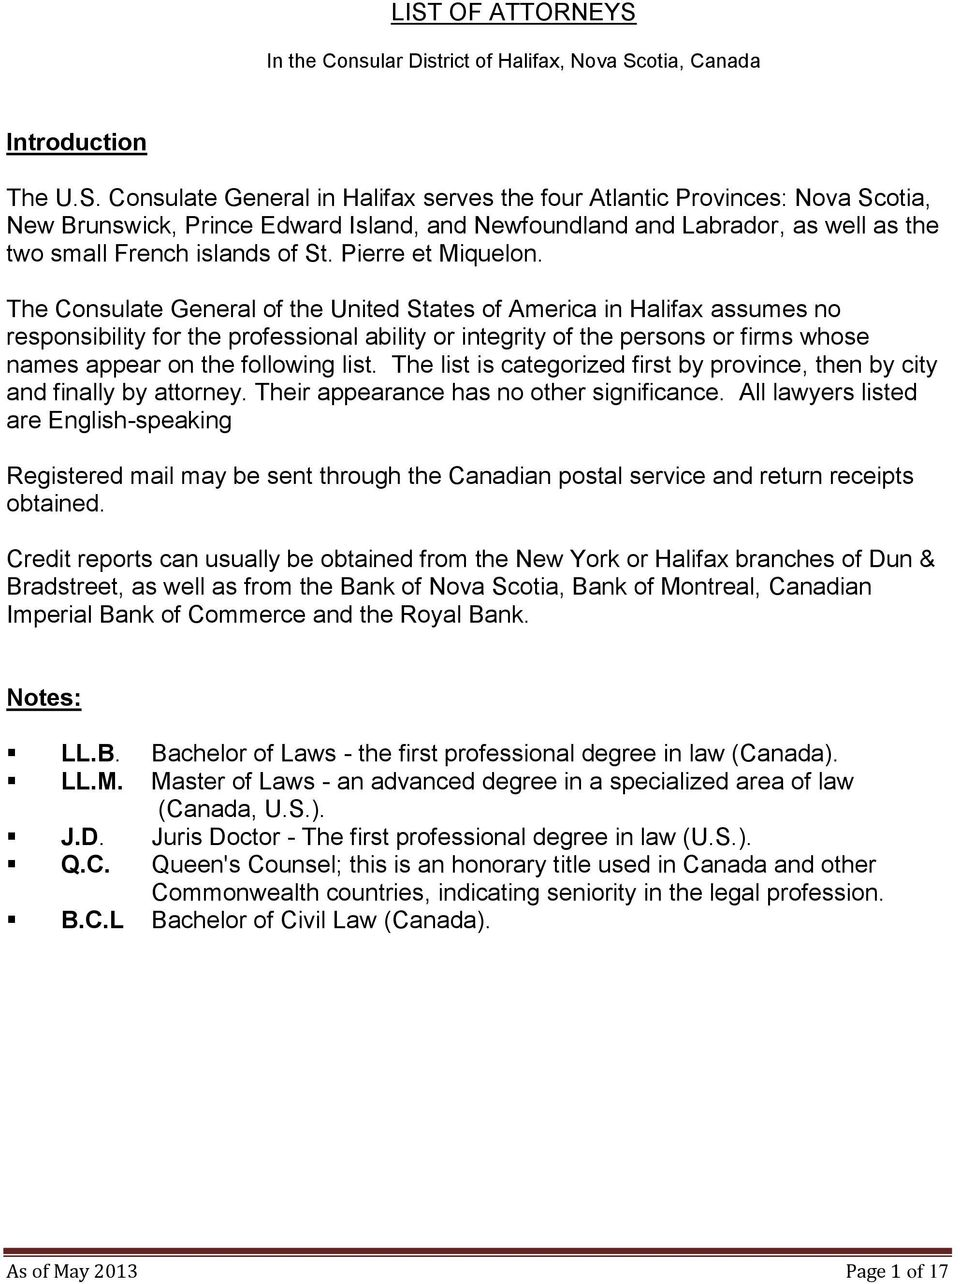 LIST OF ATTORNEYS  In the Consular District of Halifax, Nova Scotia